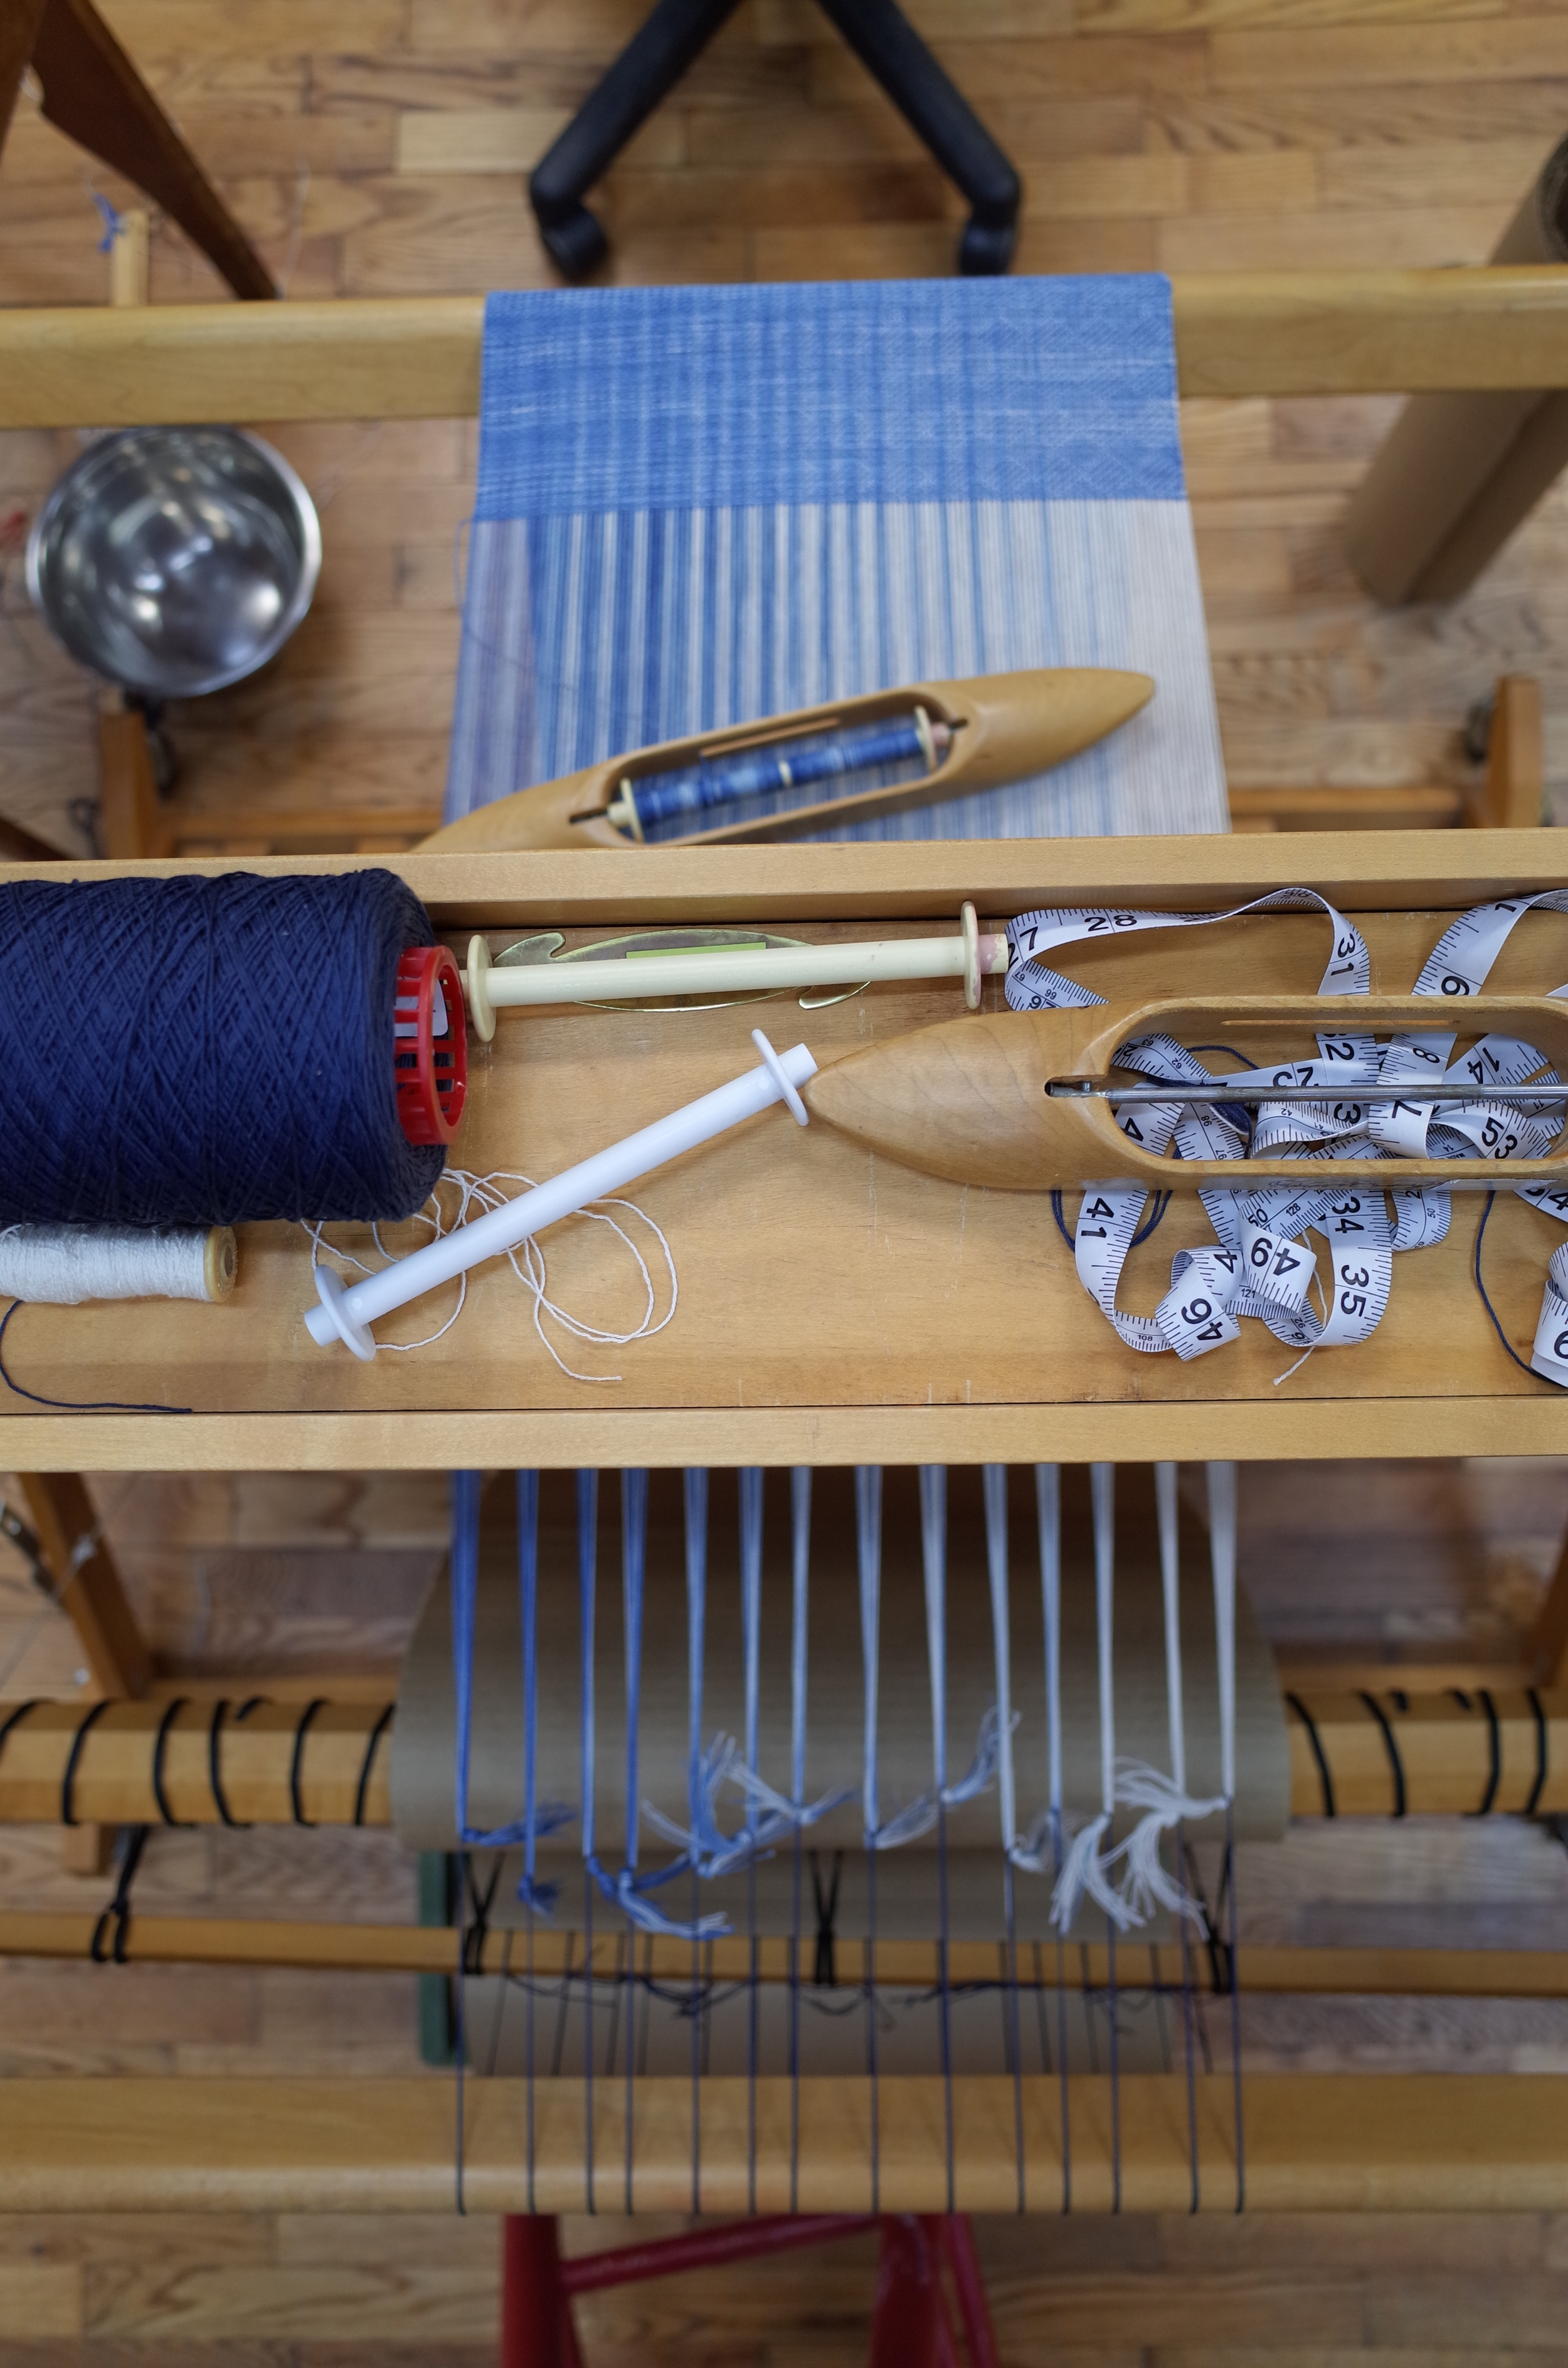 View of the loom and tools from aboveat the end of the weaving.